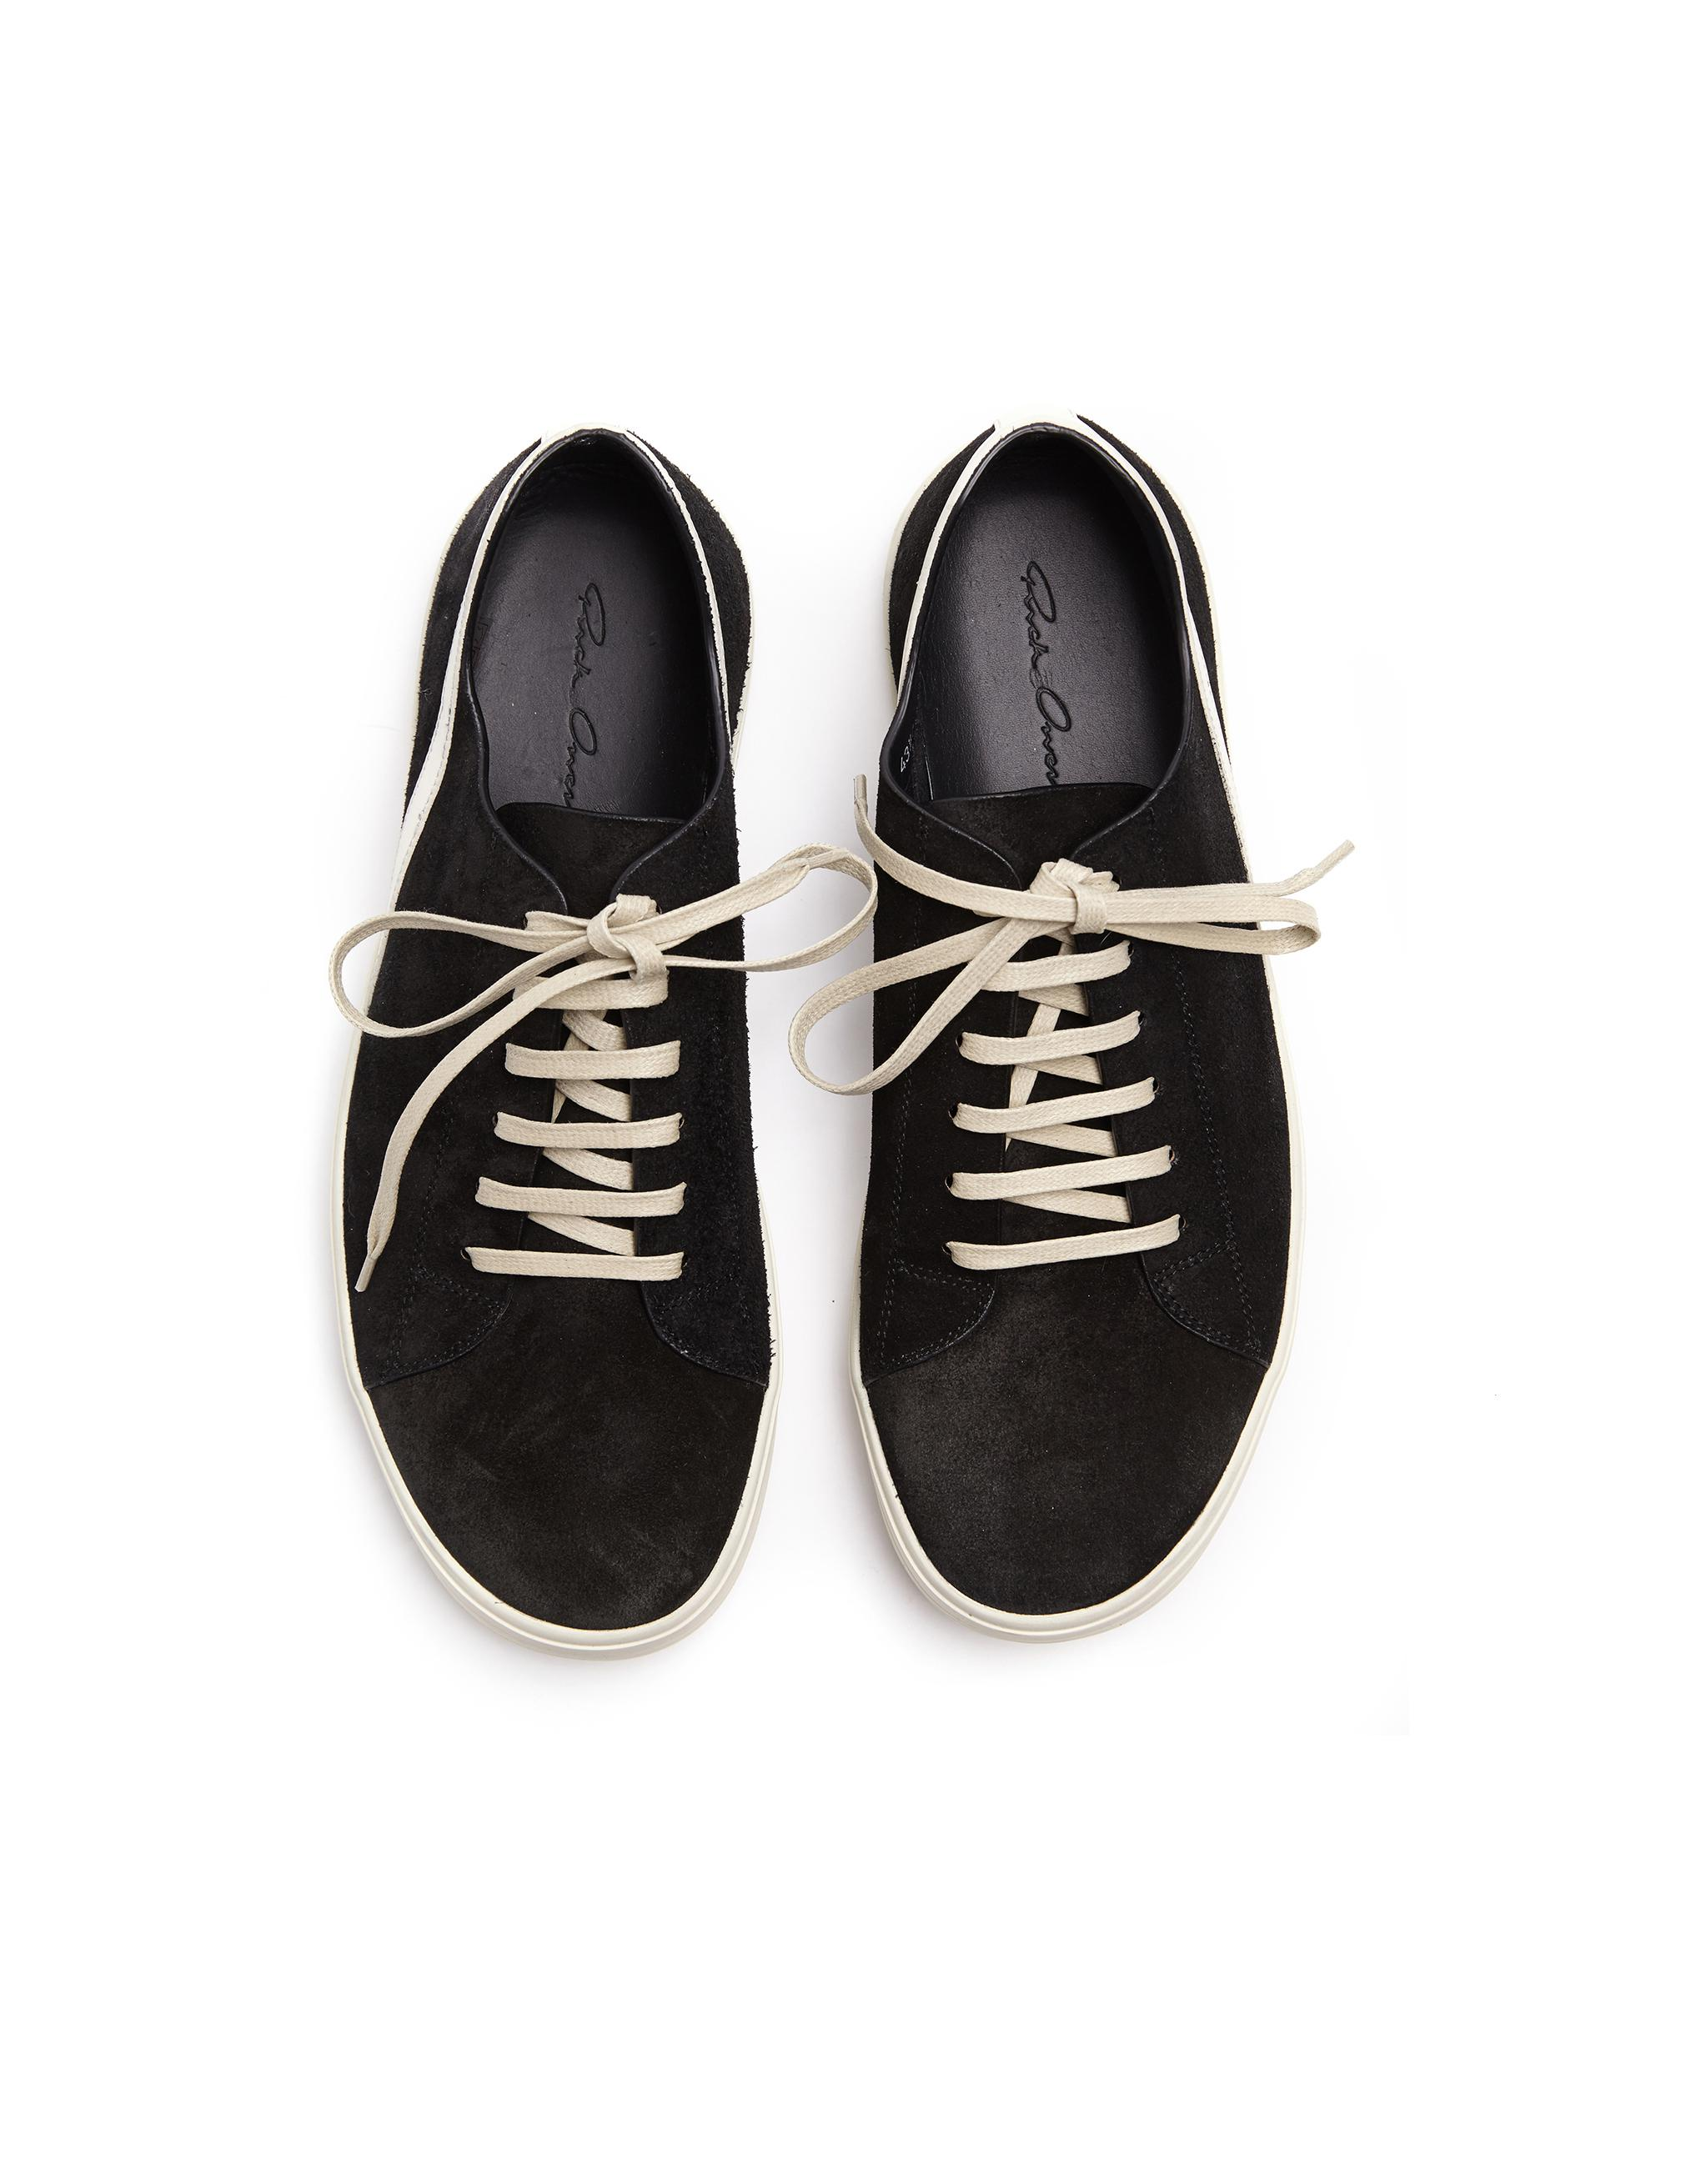 Rick Owens Suede Sneakers in Black for Men - Lyst 2afaf447e